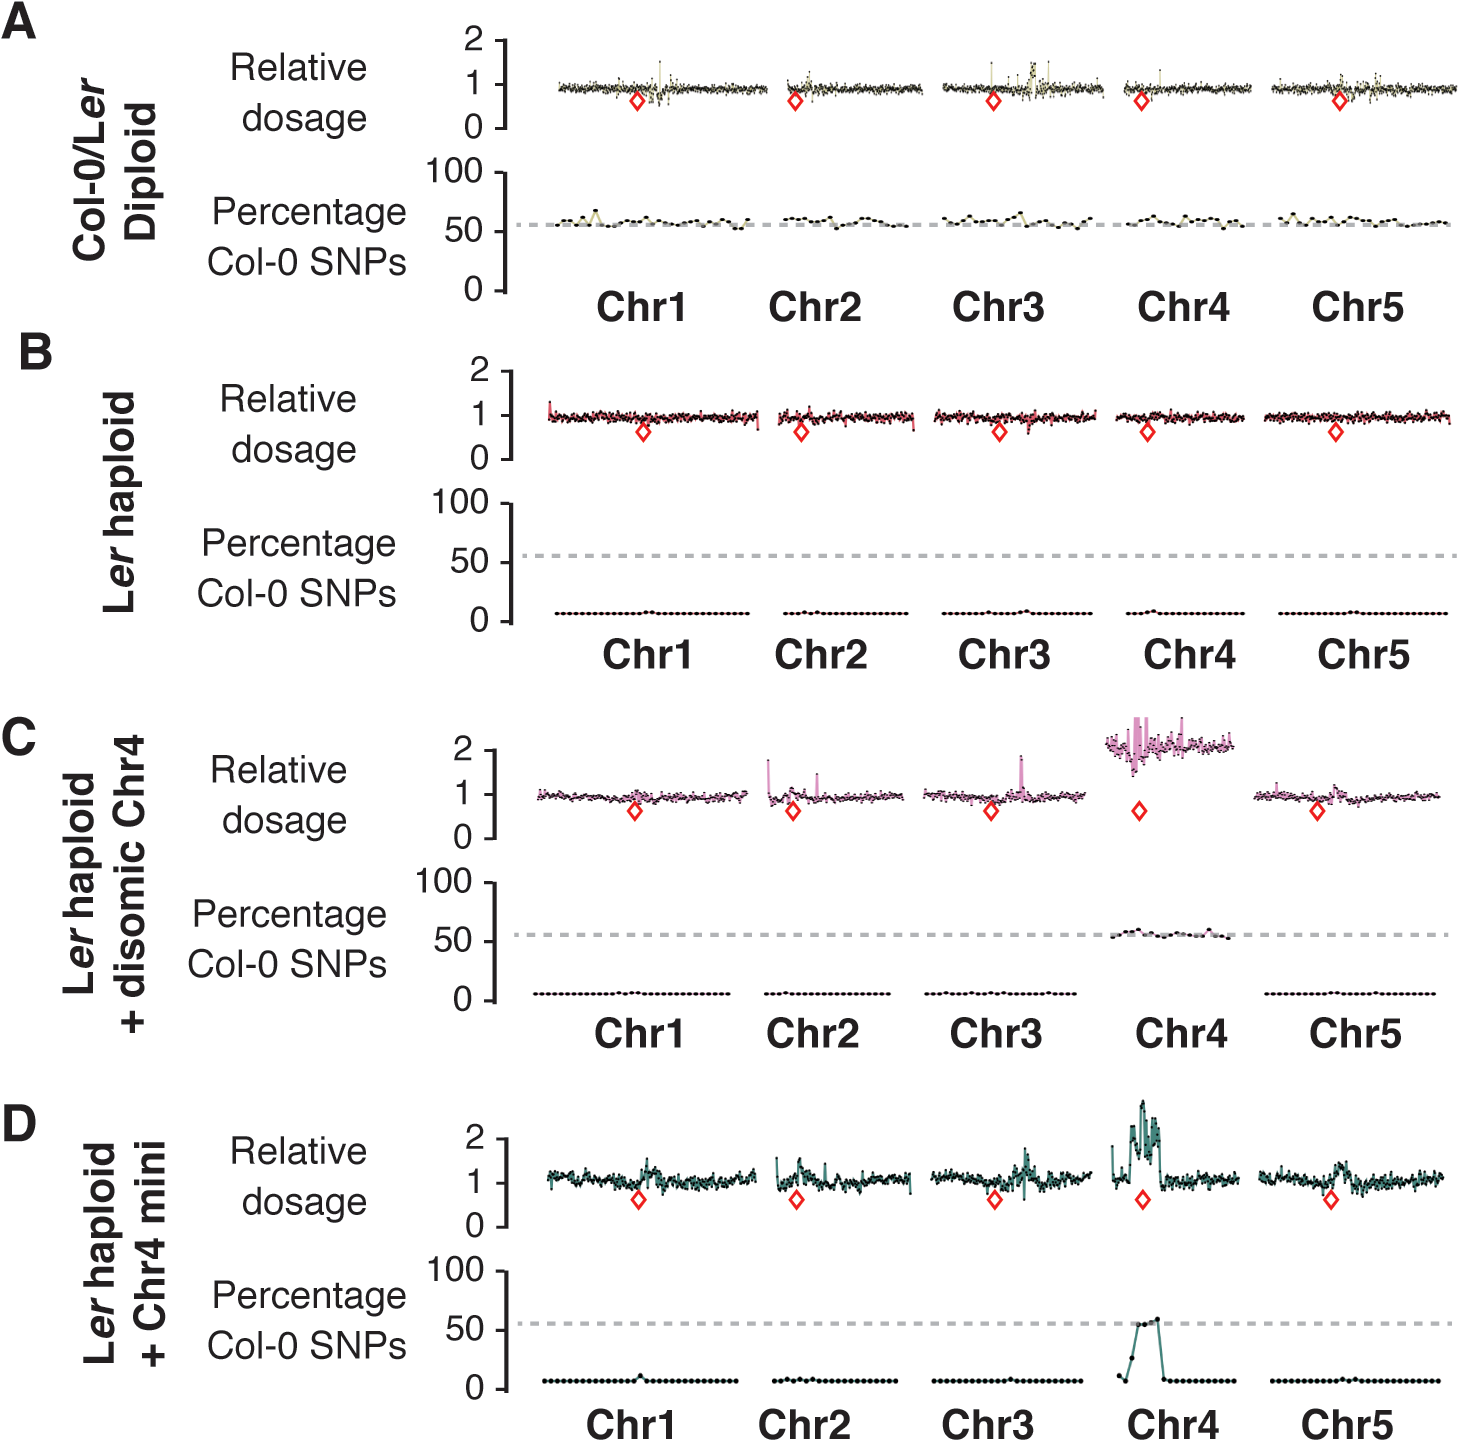 Characterization of haploid genotypes using whole-genome sequencing.